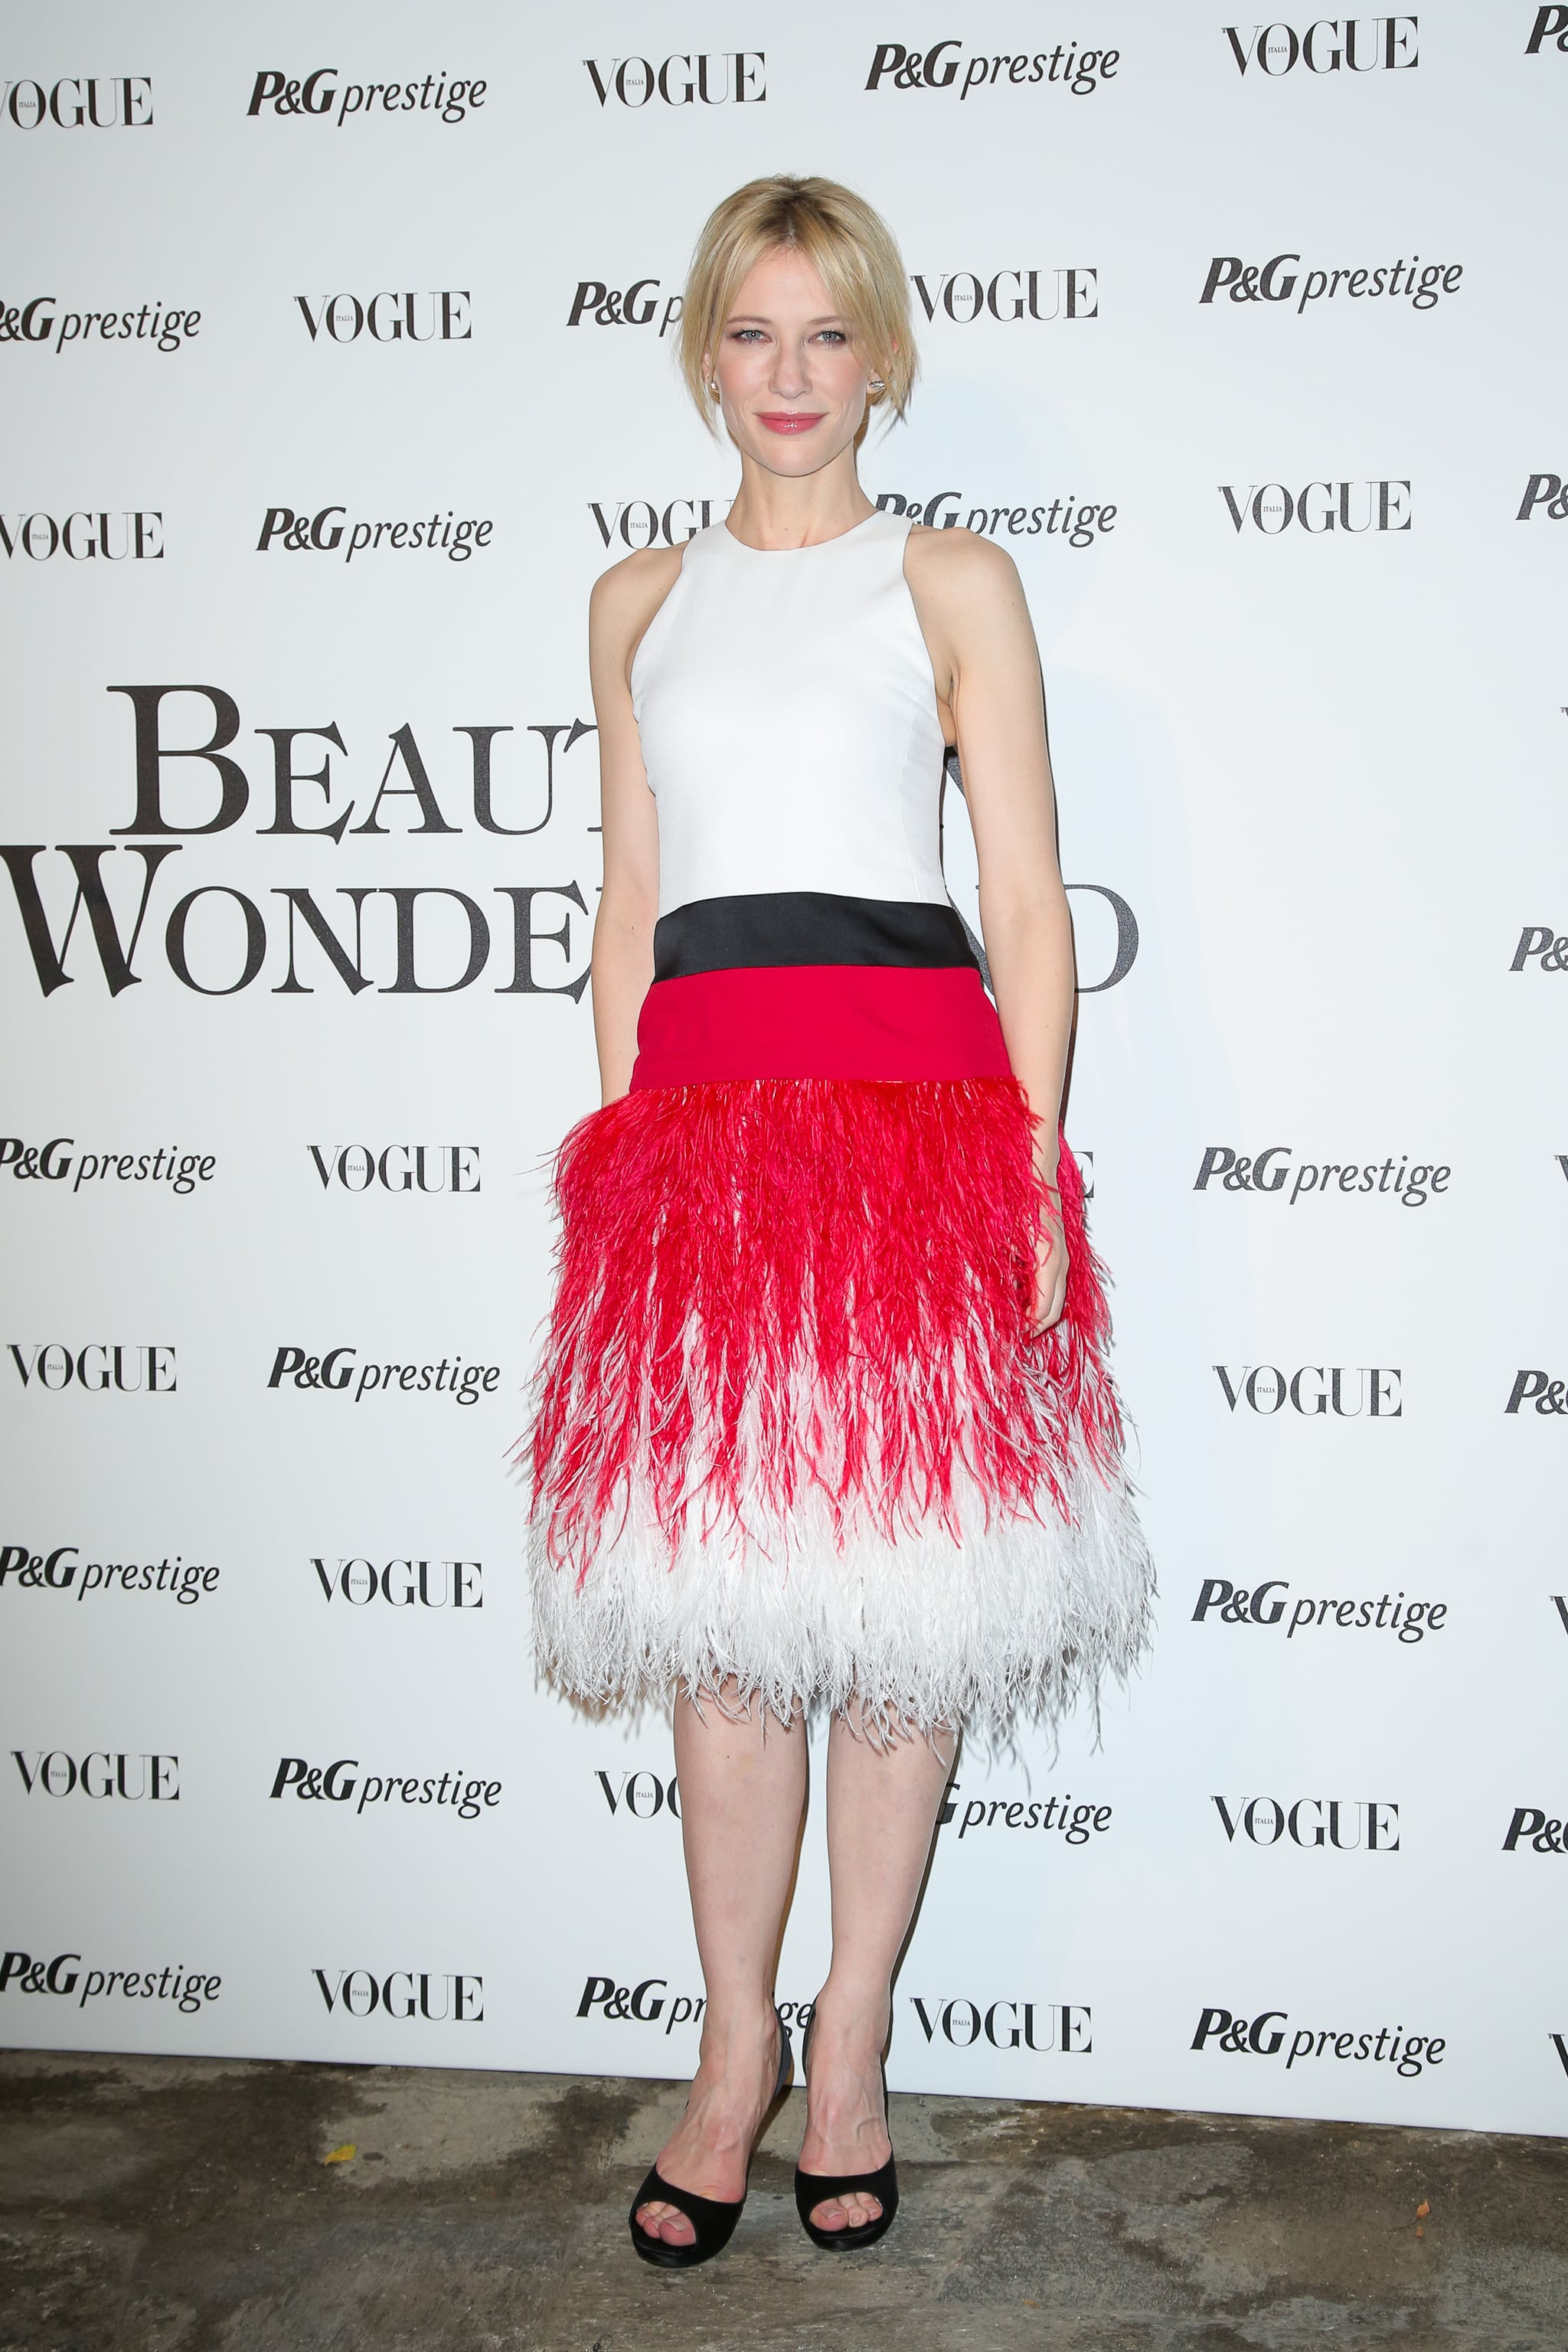 Cate Blanchett attended the Beauty in Wonderland event on Thursday.